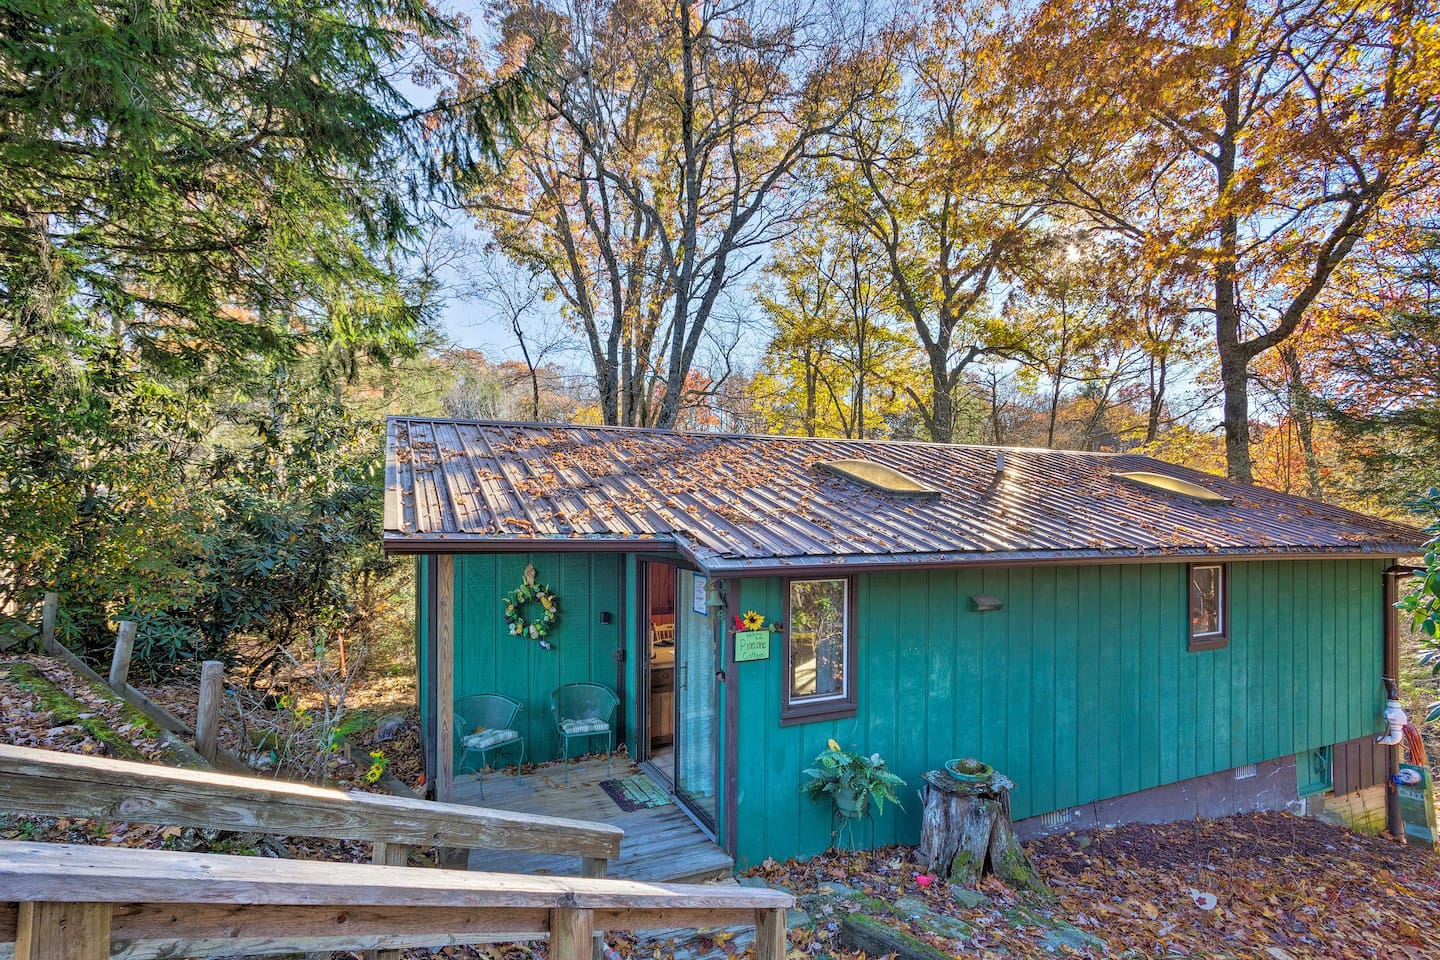 Make your way to Newland and stay at this vibrant wooded cottage!